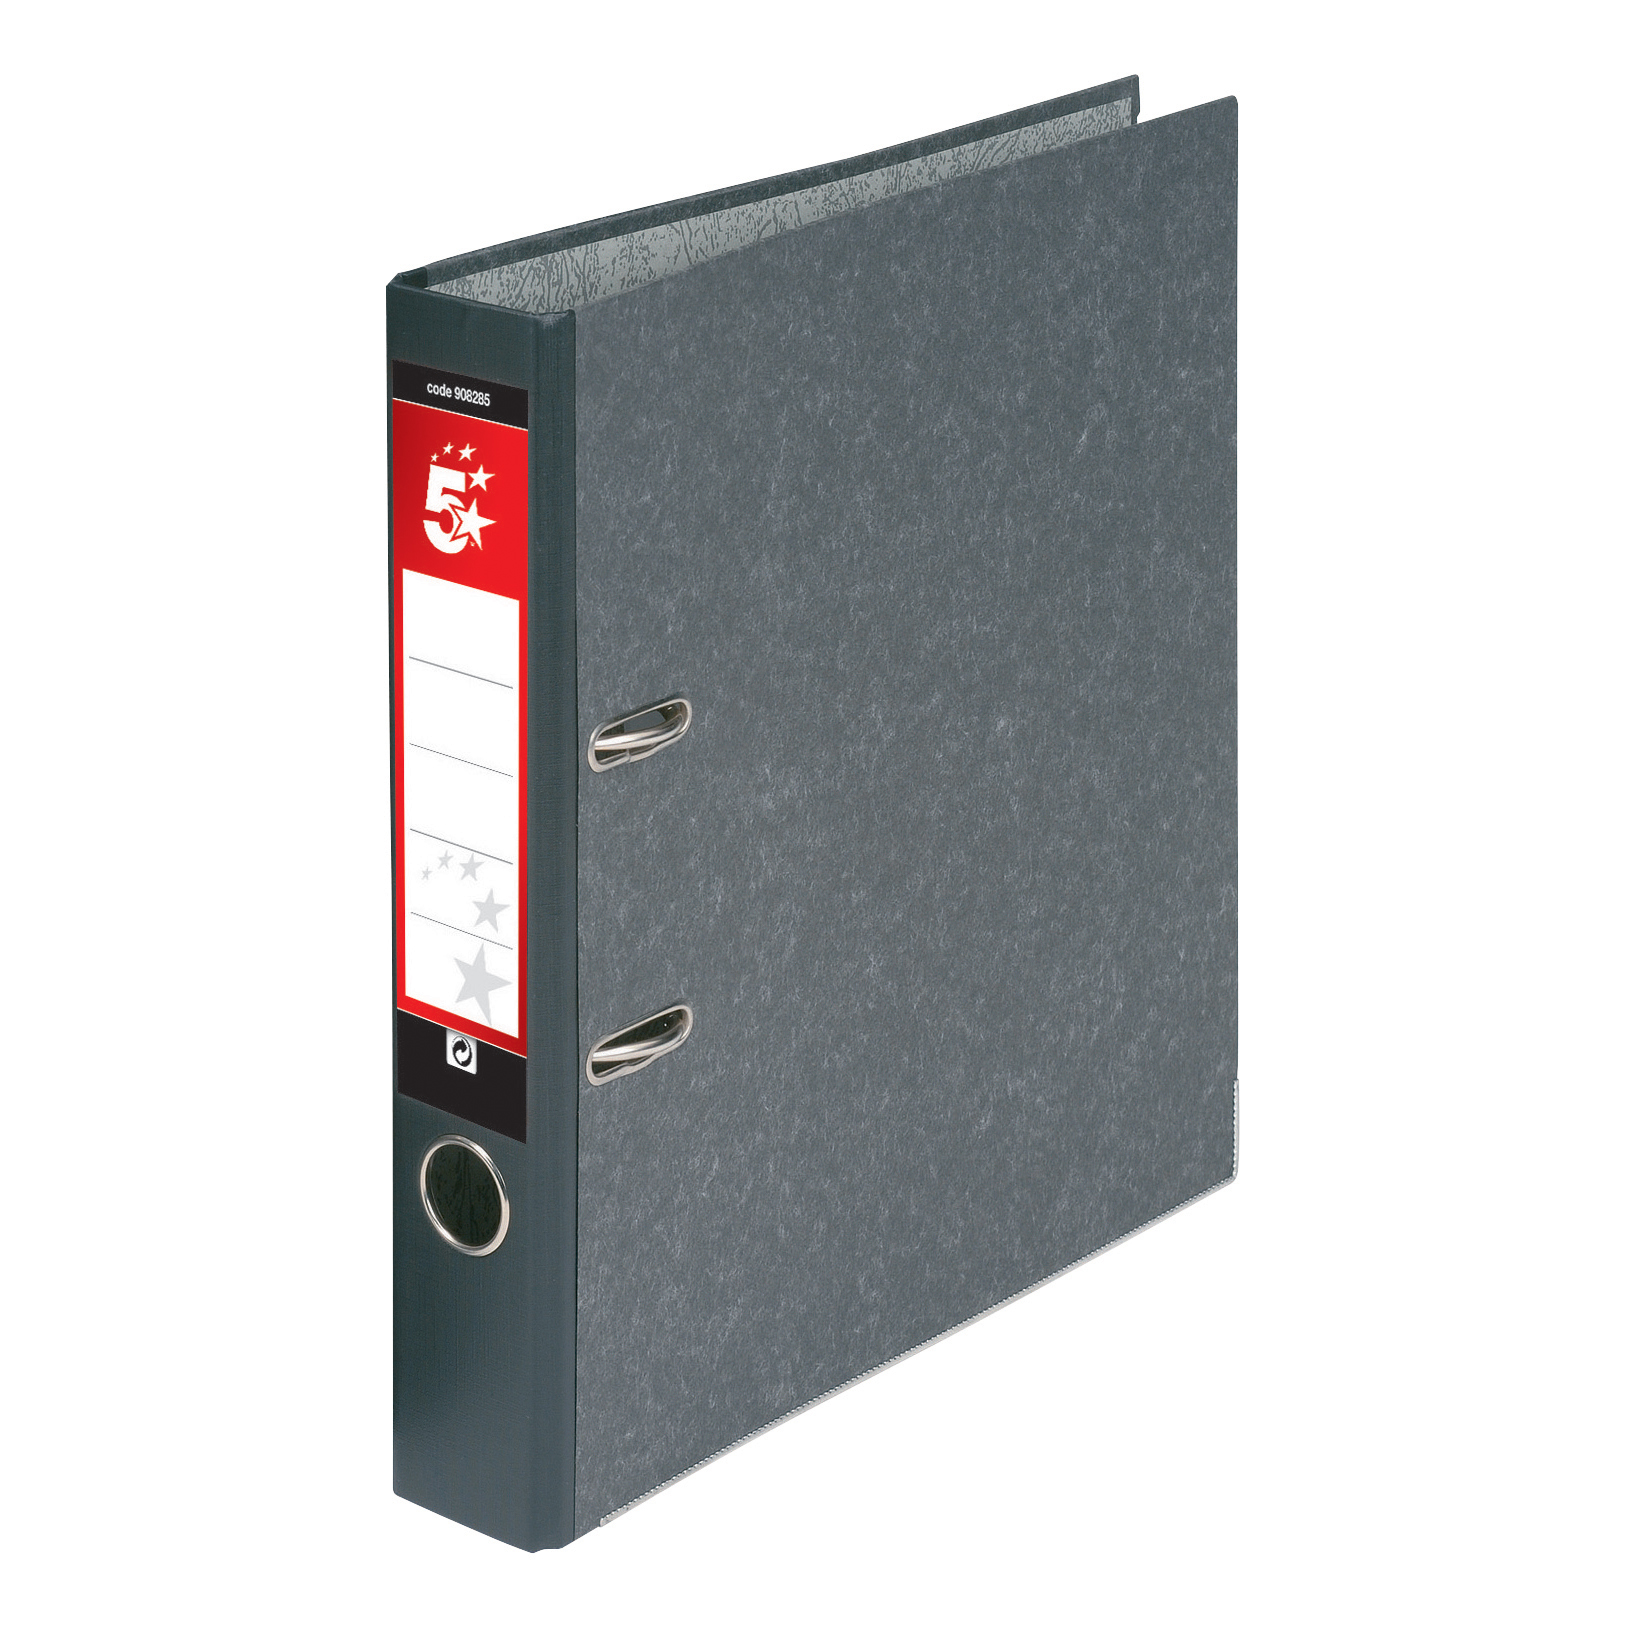 5 Star Office Mini Lever Arch File 50mm Spine Foolscap Cloudy Grey